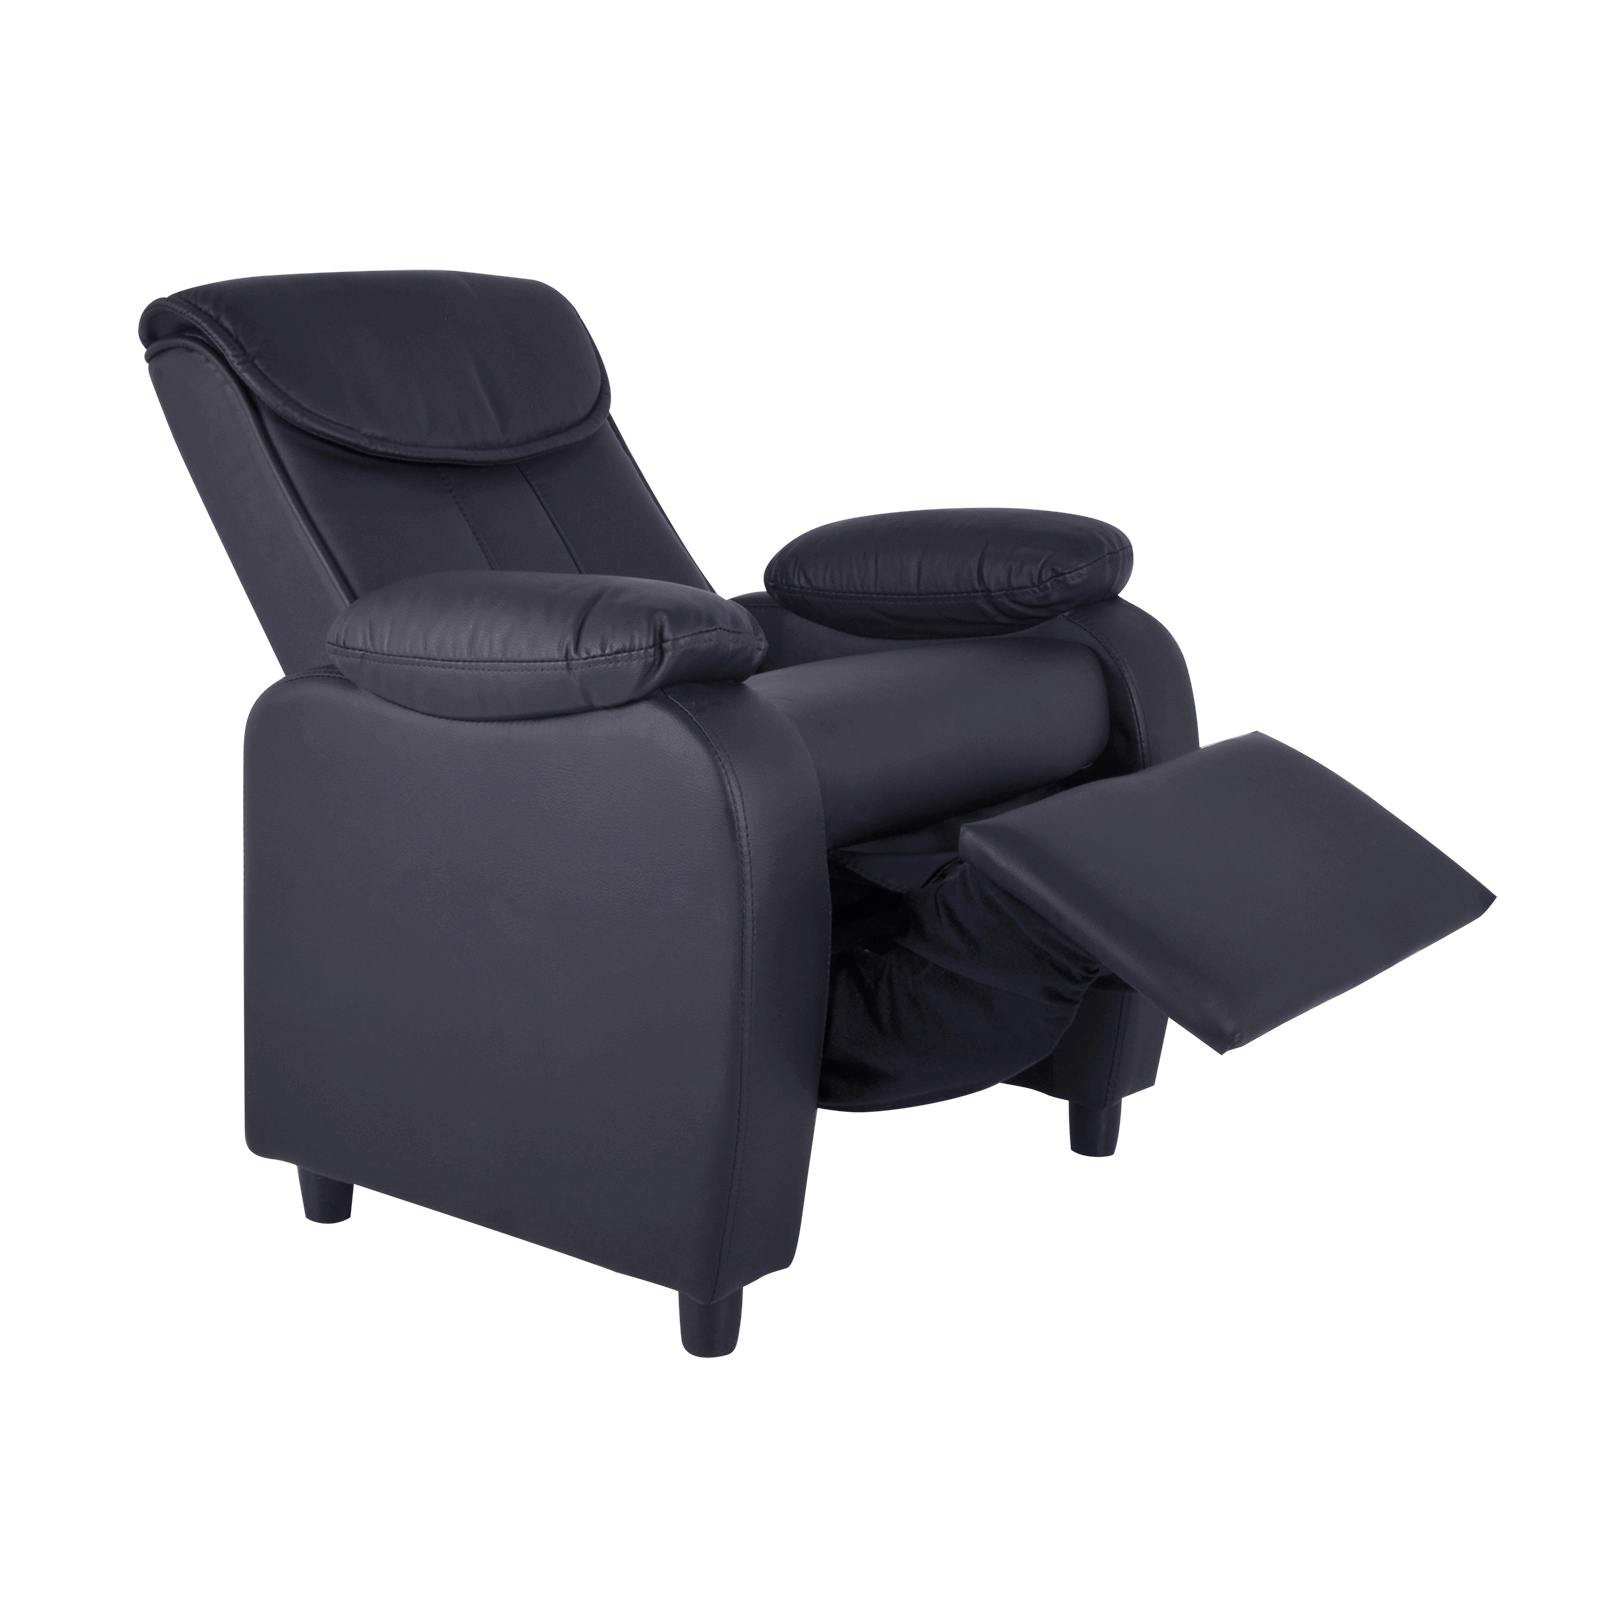 Comfy Recliner Chairs 28 Images Reclining Swivel Chair